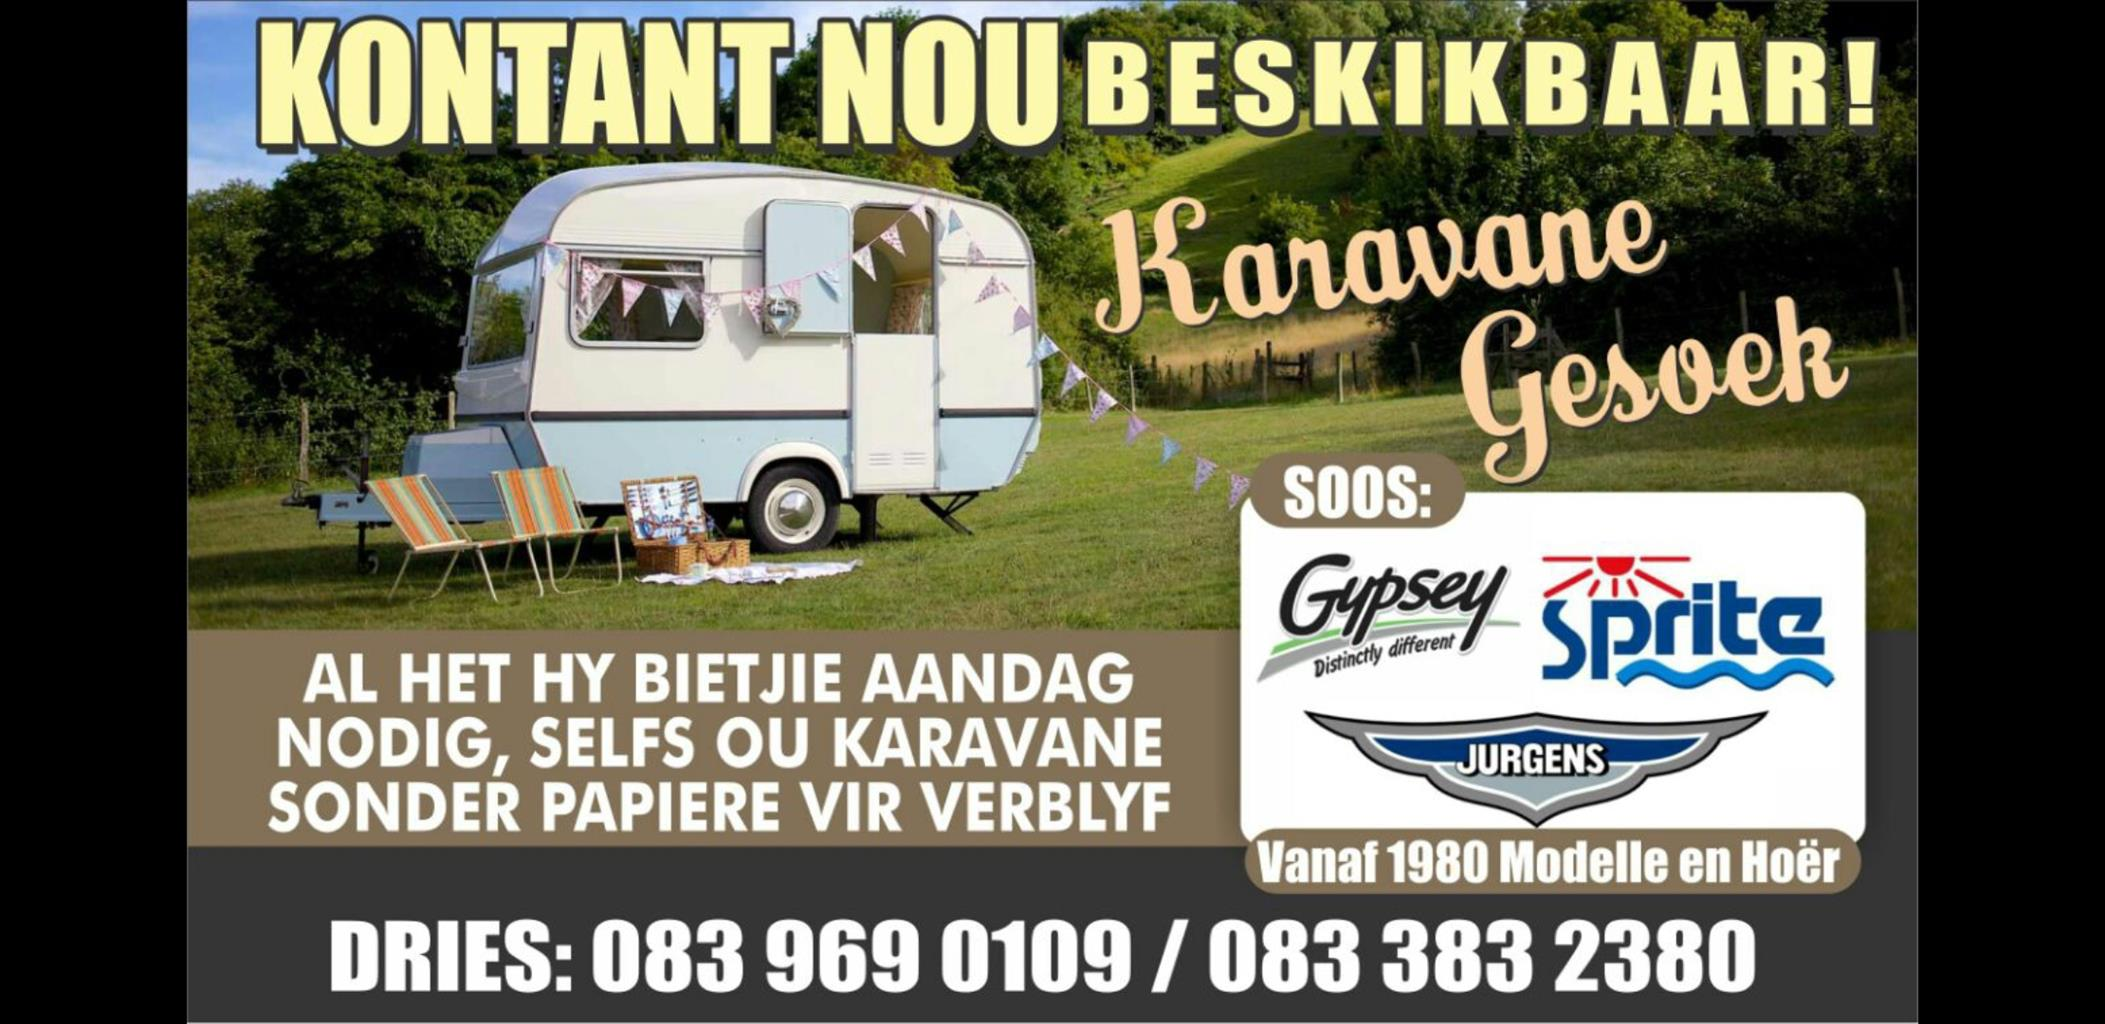 Cash for your caravan like Sprite,Jurgens and Gypsey from 1980 models to 2000.